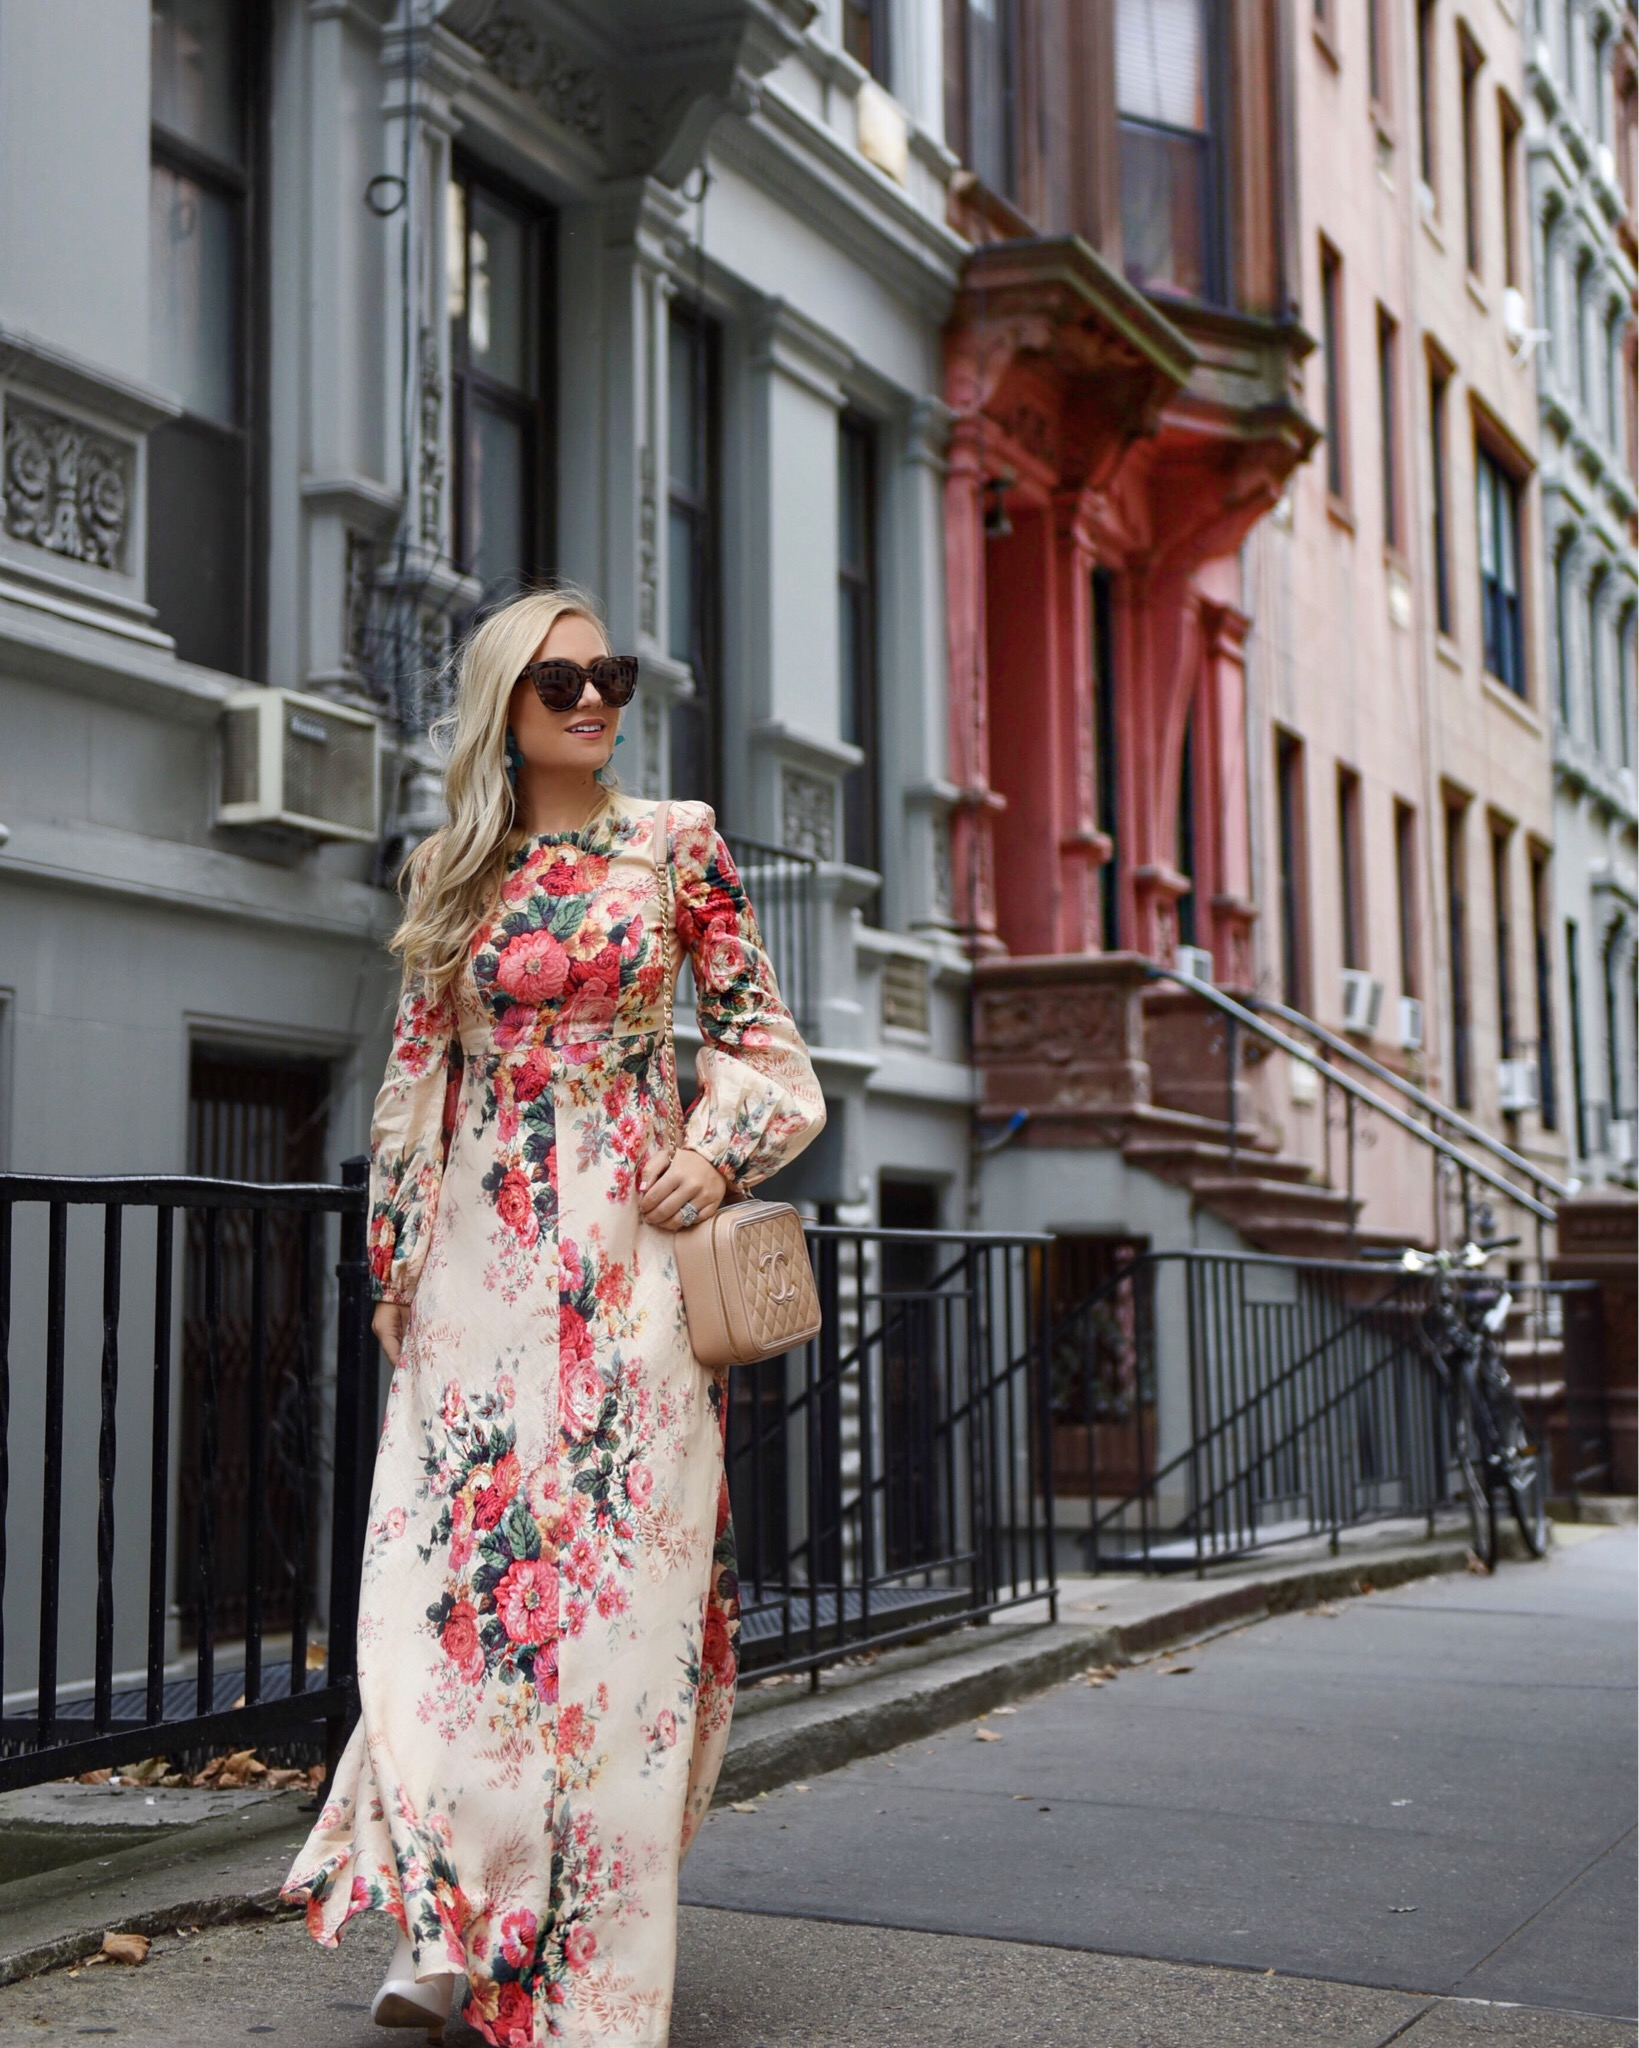 Zimmermann-Dress-Fall-Florals-Saks-Nordstrom-Lele-Sadoughi-Floral-Dress-Chanel-Handbag